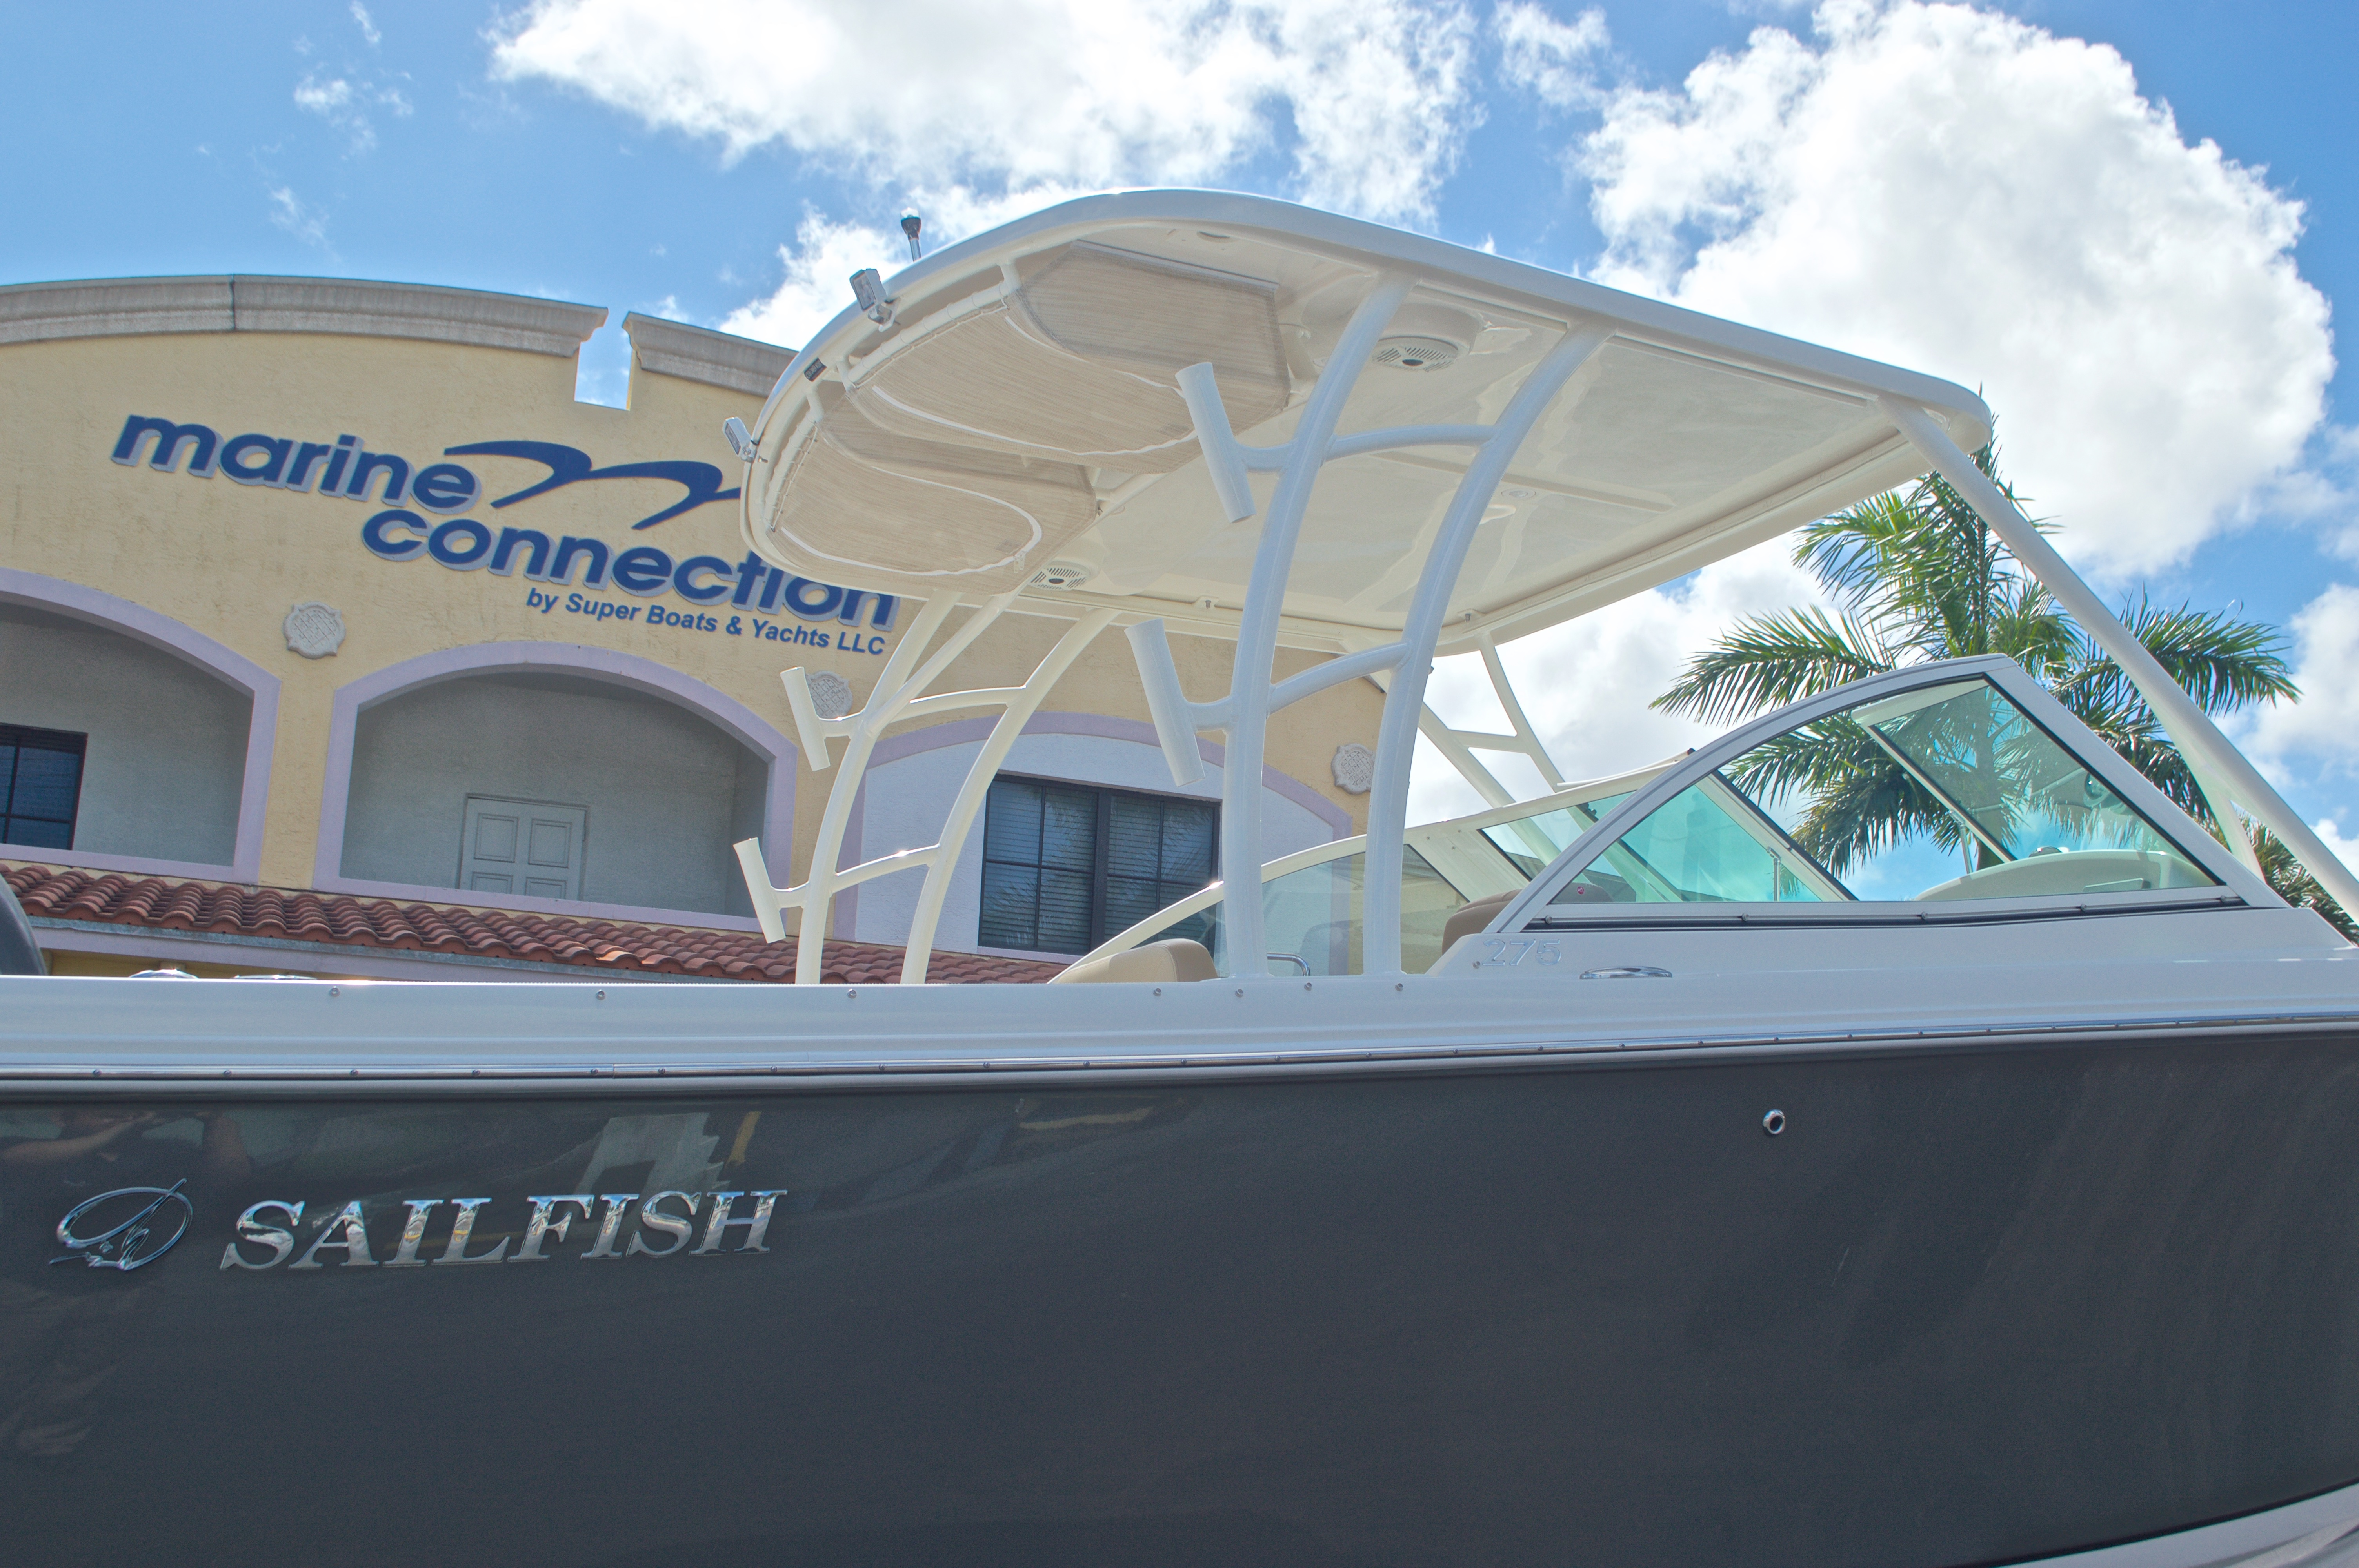 Thumbnail 9 for New 2017 Sailfish 275 Dual Console boat for sale in West Palm Beach, FL